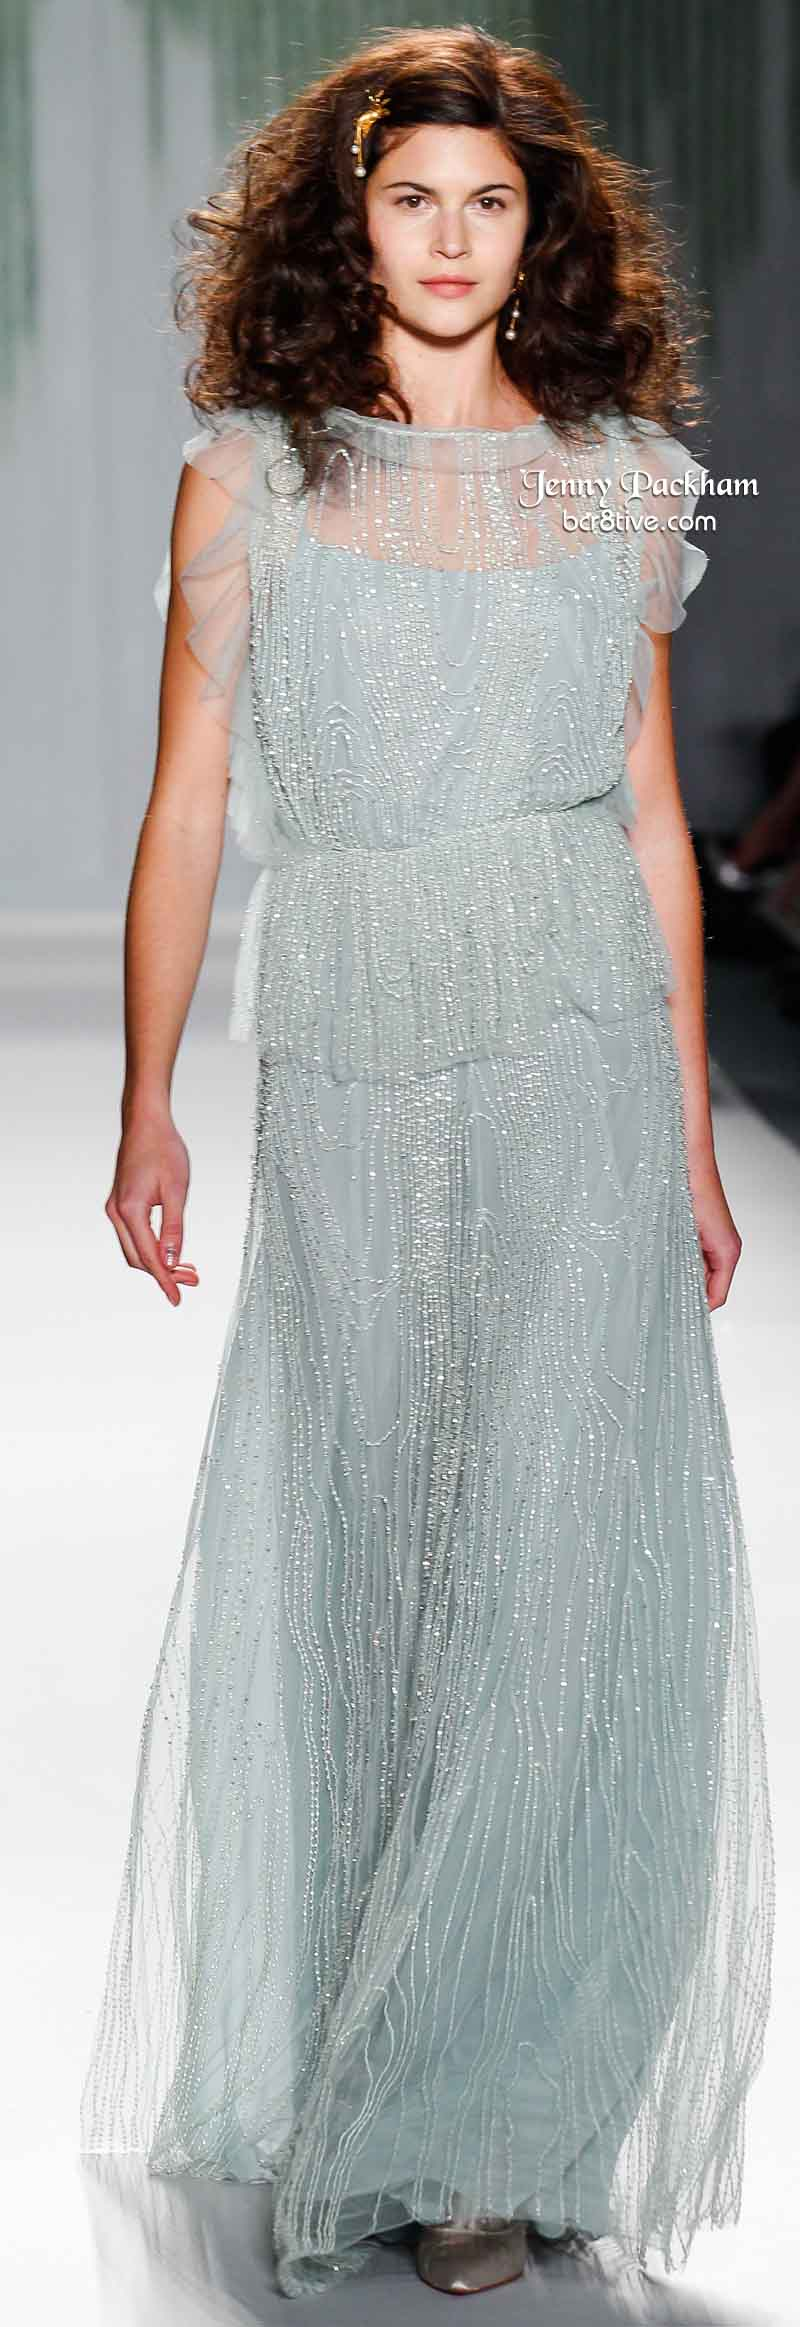 Awesome Jenny Packham Eden Wedding Dress Image Collection - All ...